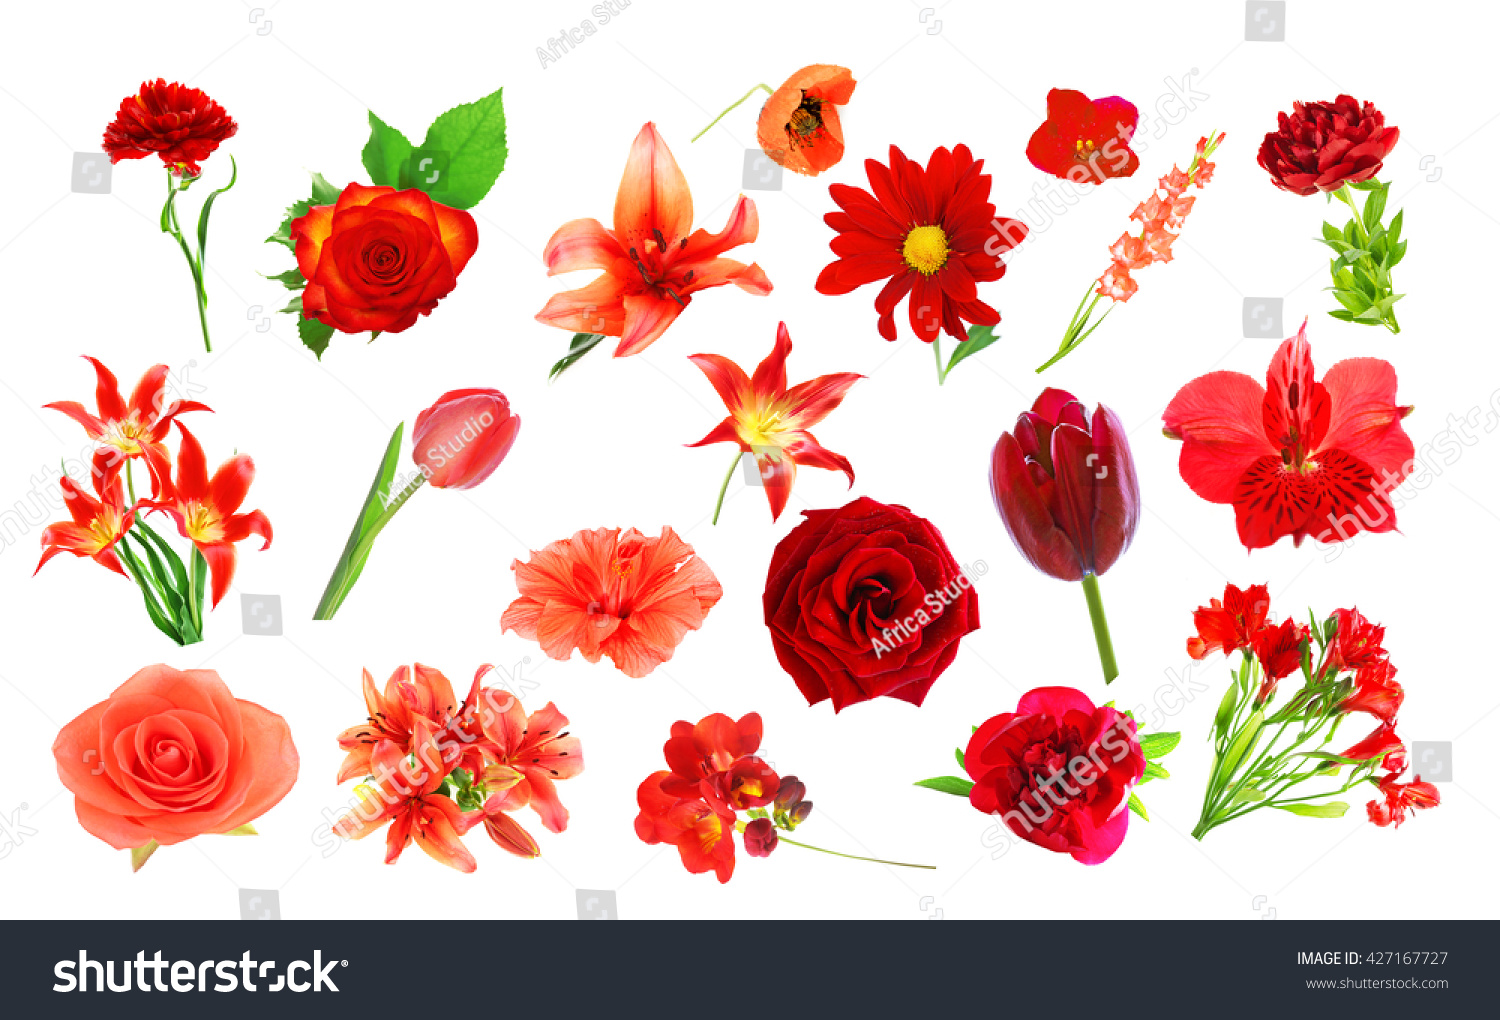 Collage Red Color Flowers Isolated On Stock Photo (Royalty Free ...